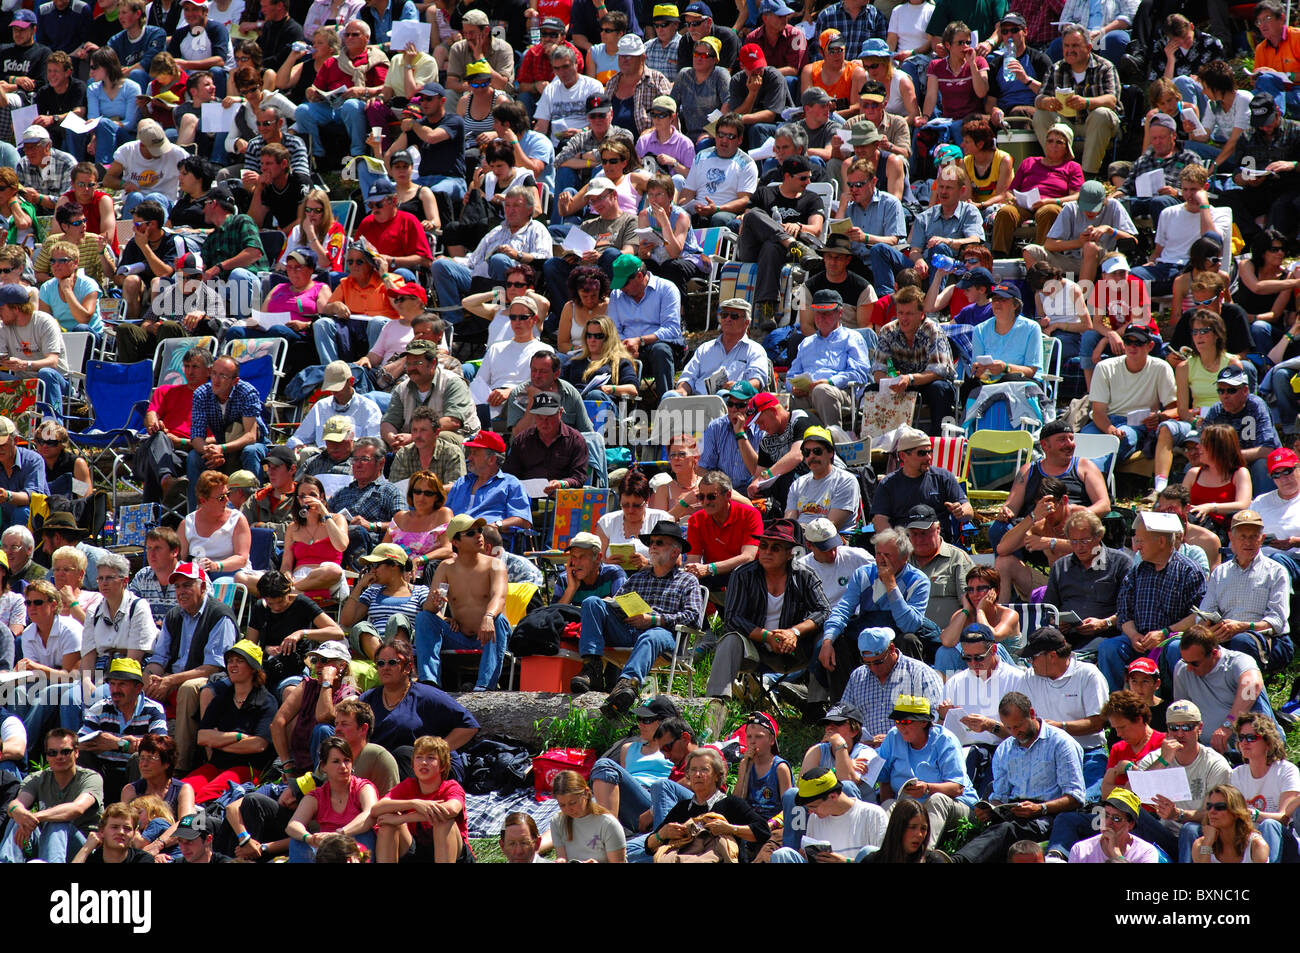 Sitting spectators of a public event on a summer day, crowd picture, Switzerland - Stock Image